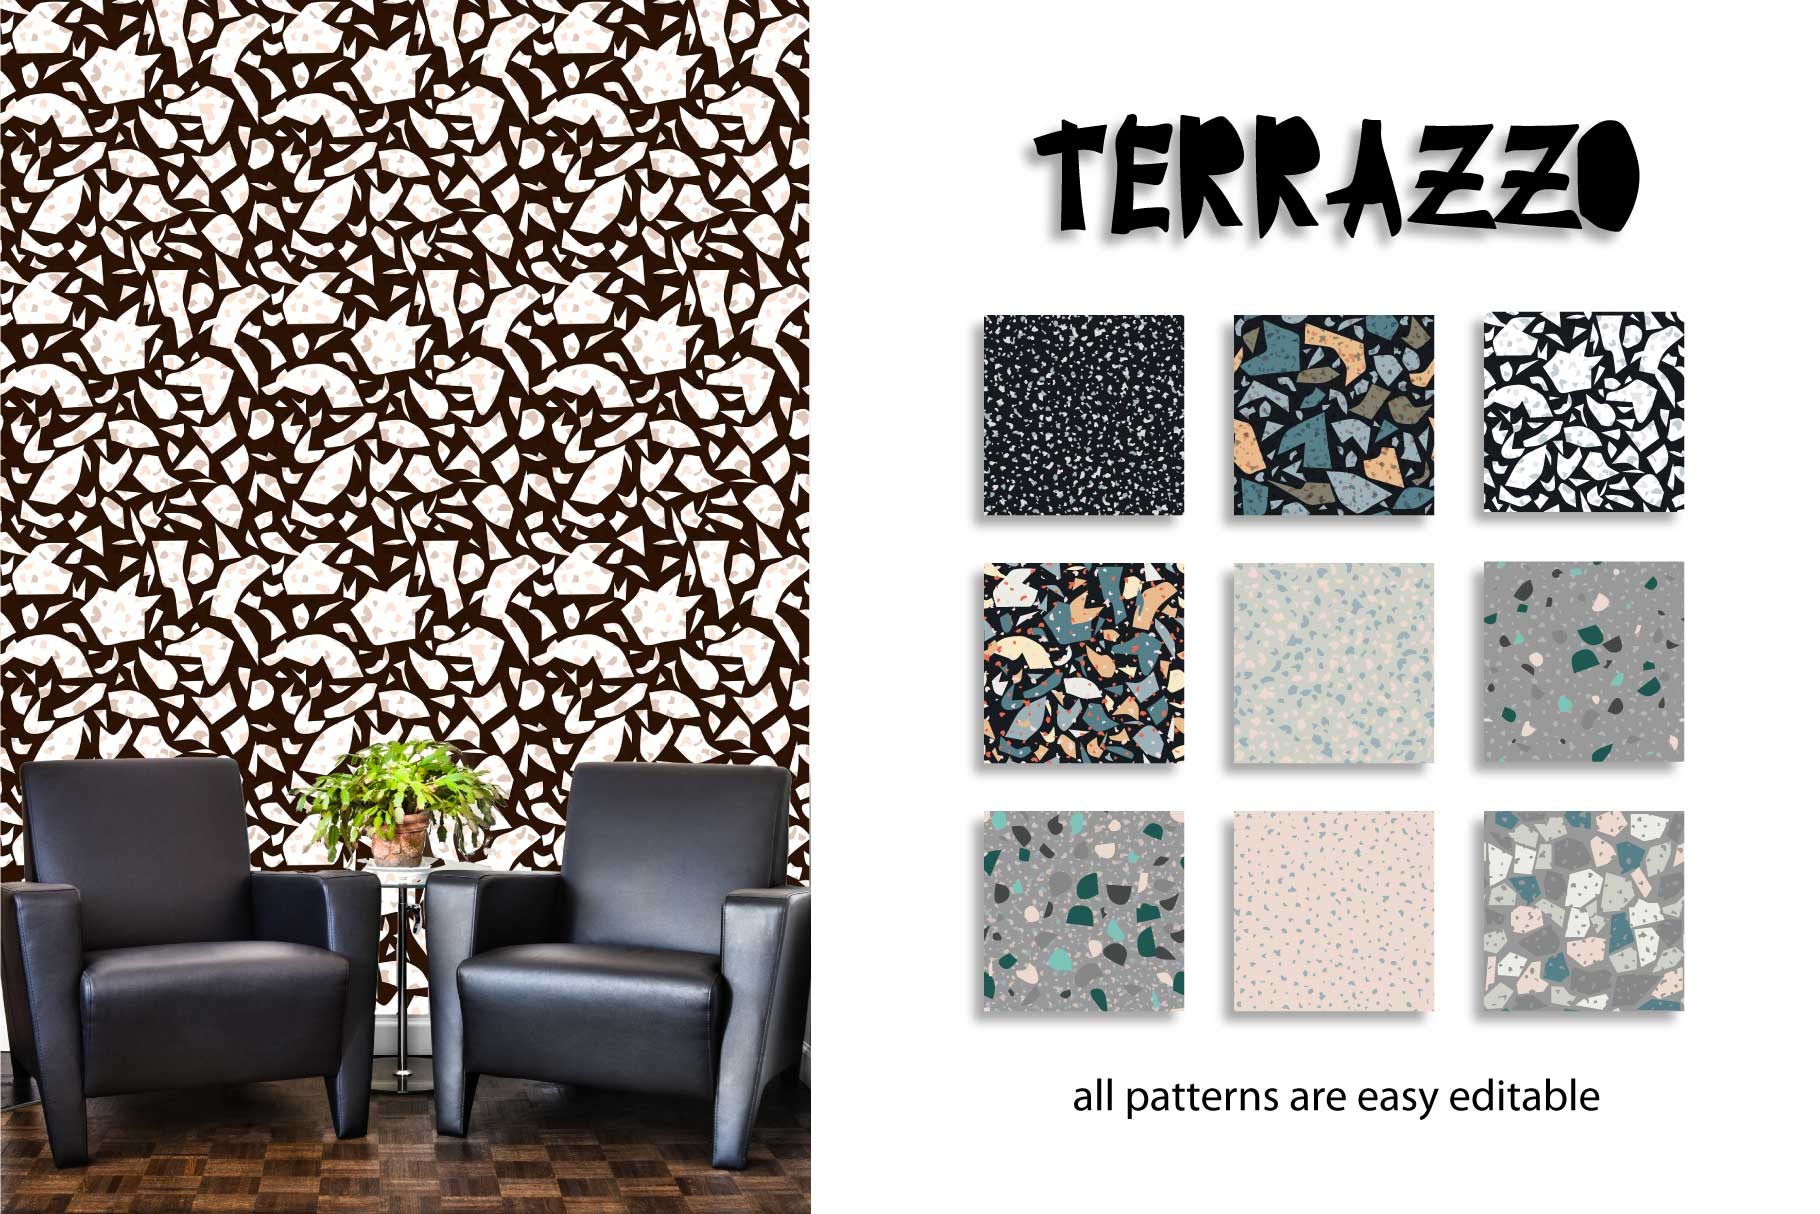 30 terrazzo seamless patterns example image 2